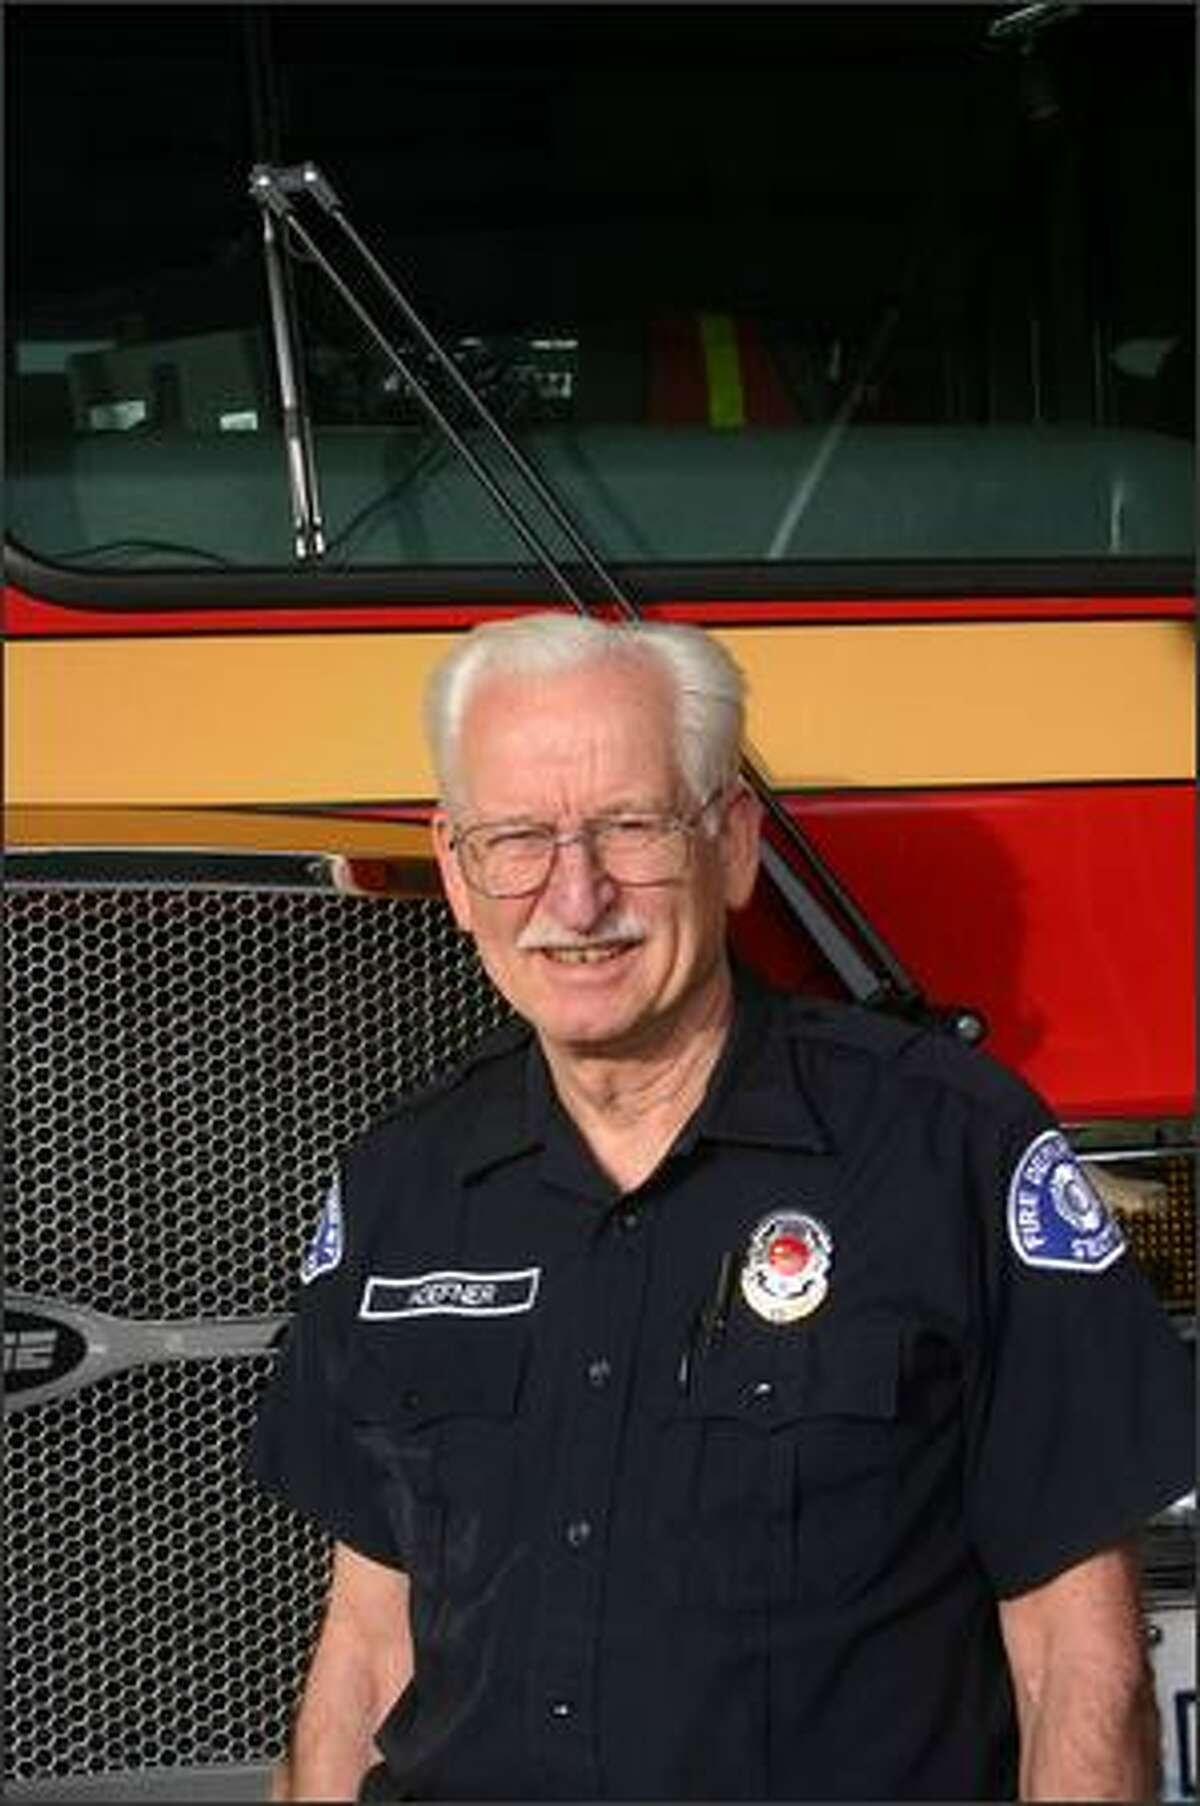 Ken Hoefner, at age 70 the Seattle Fire Department's oldest firefighter, says,